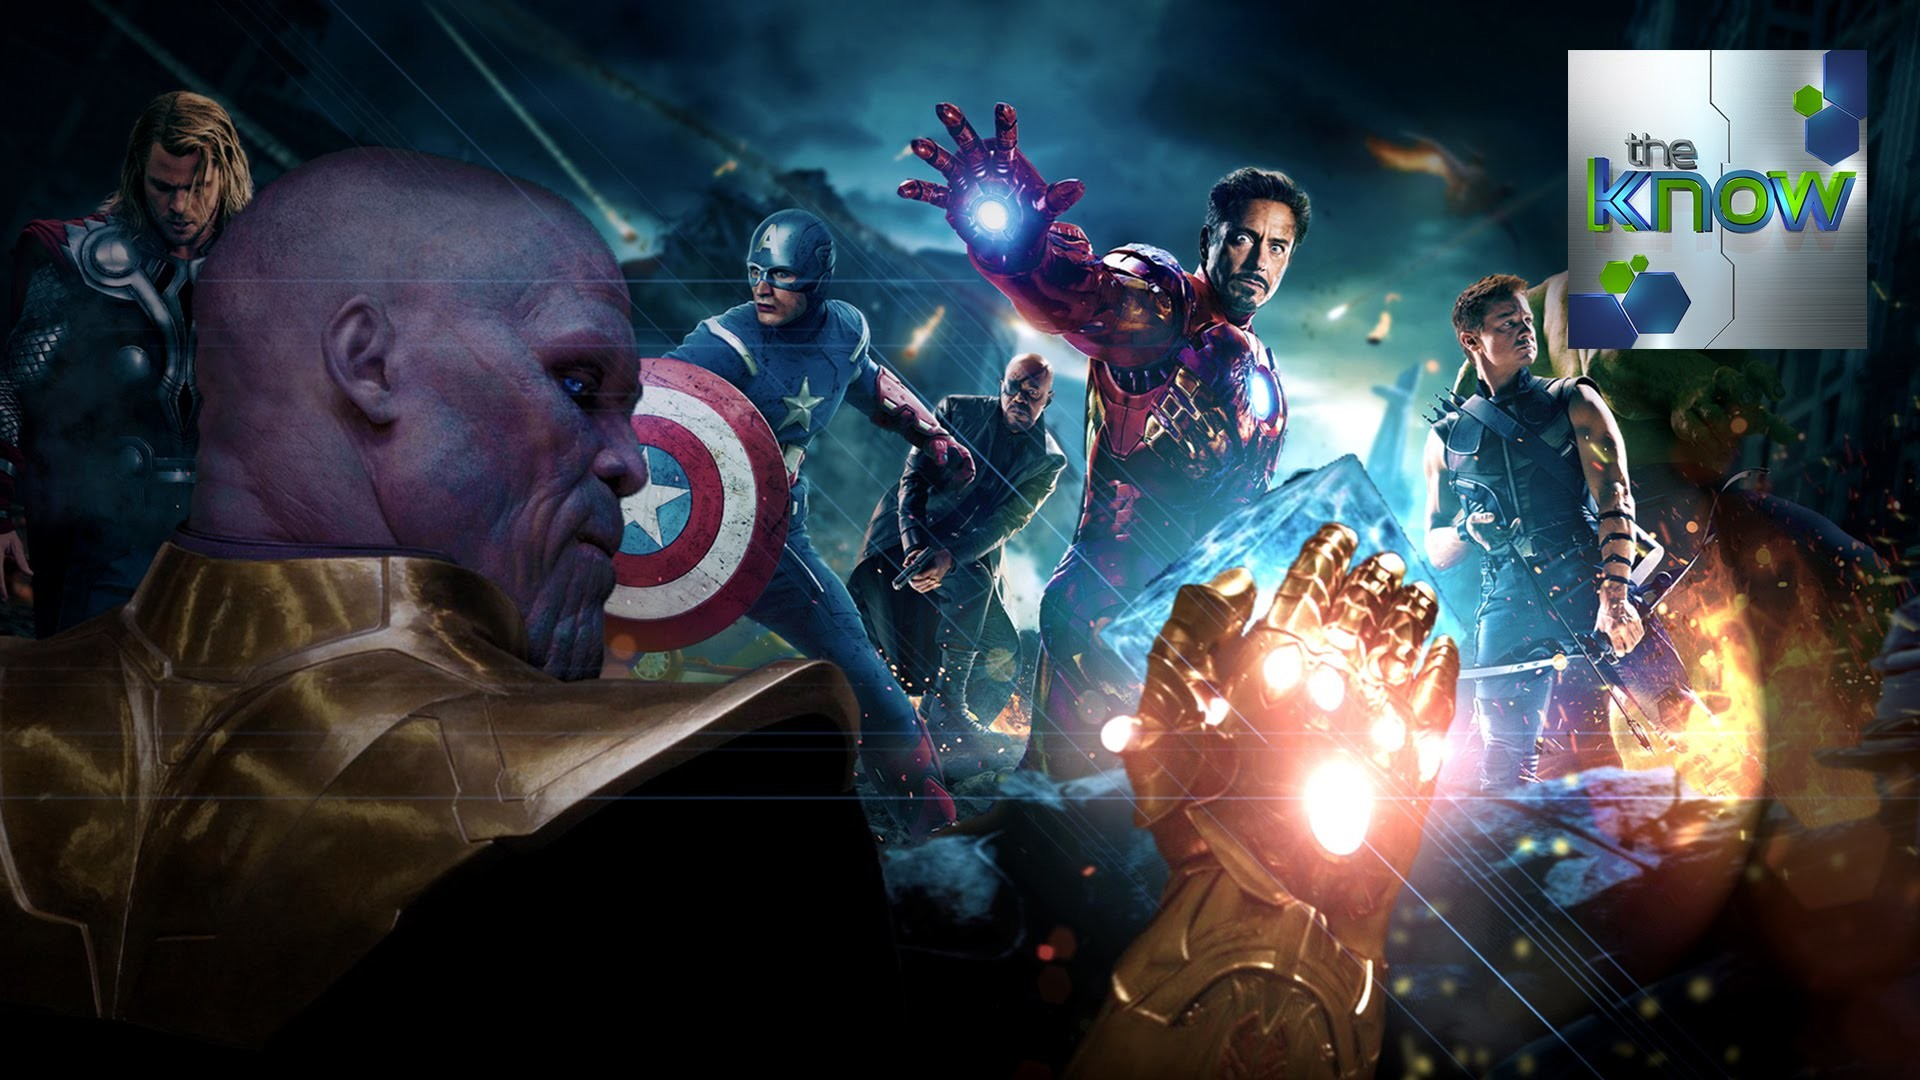 Marvel Studios President Talks About Thanos + Avengers 3 Release Date – The  Know – YouTube